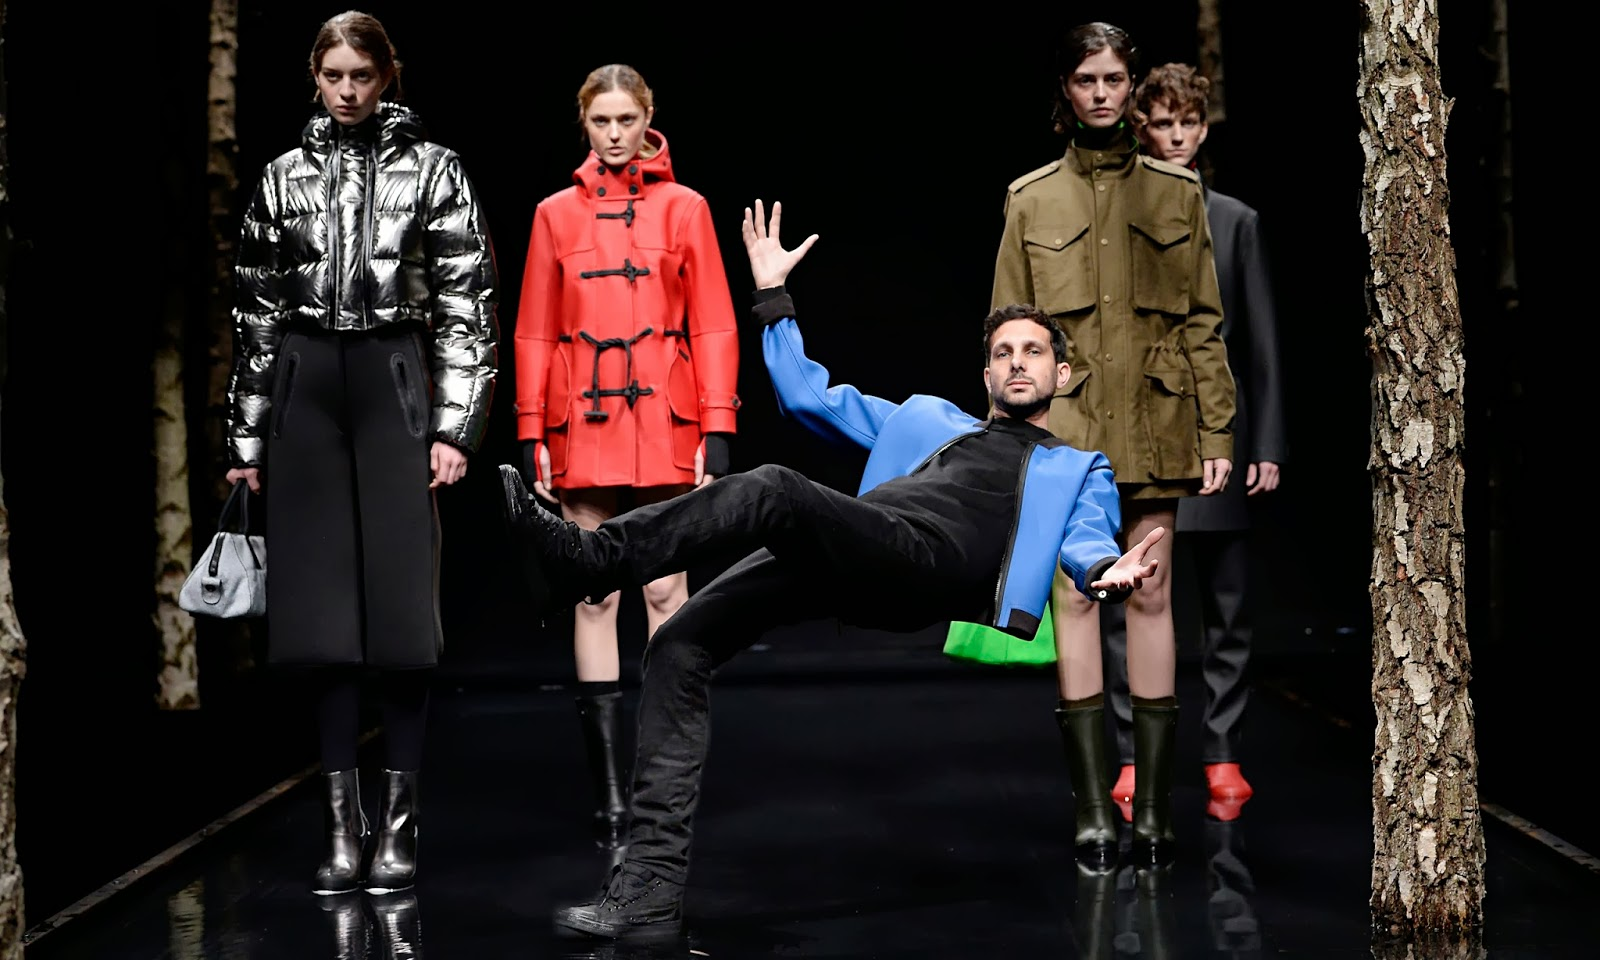 Dynamo in Hunter Original - London Fashion Week FW14